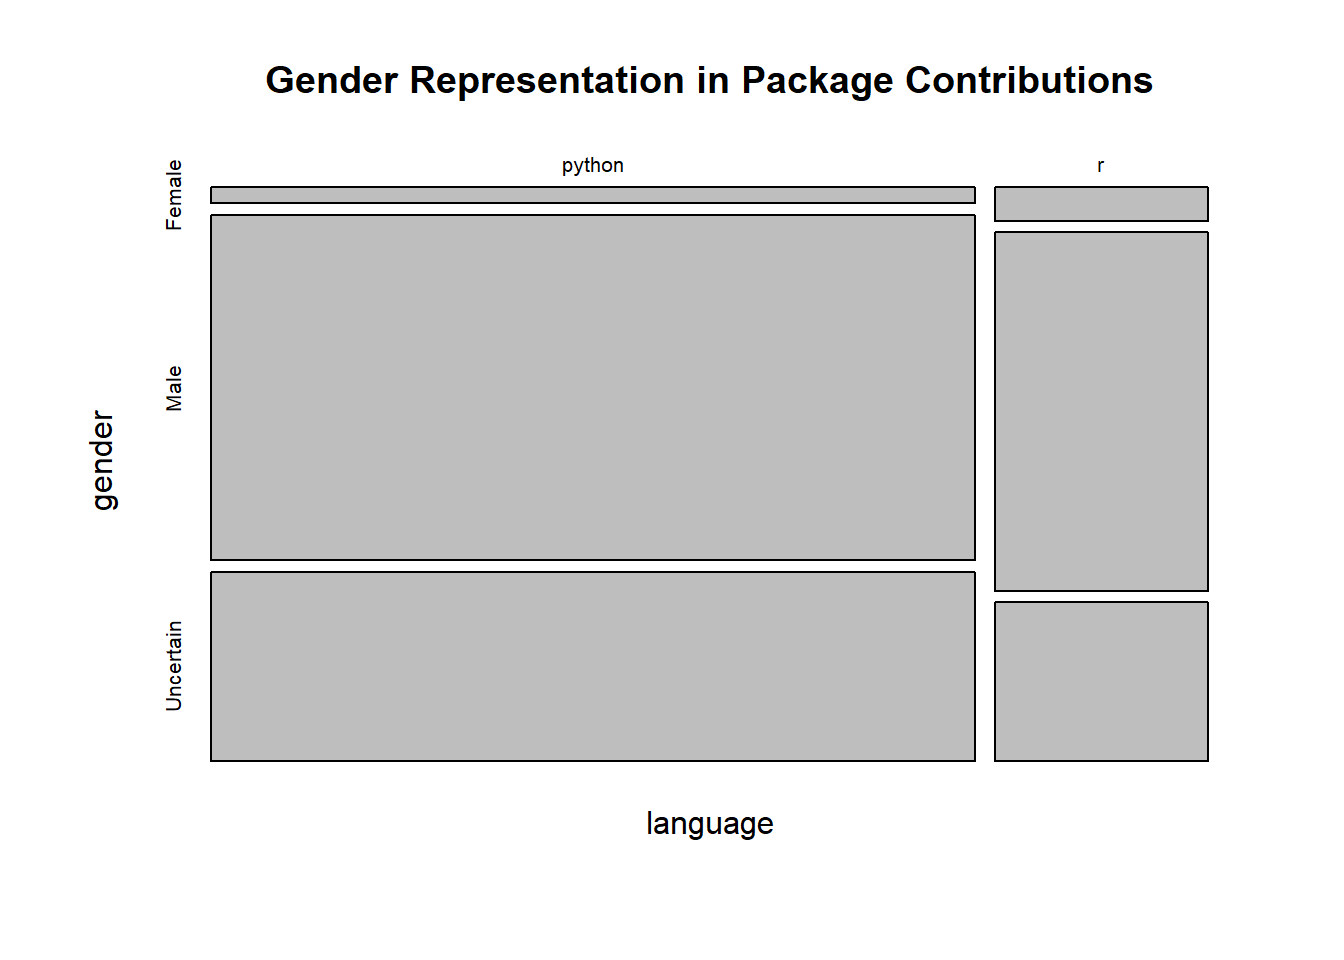 Gender Diversity in R and Python Package Contributors